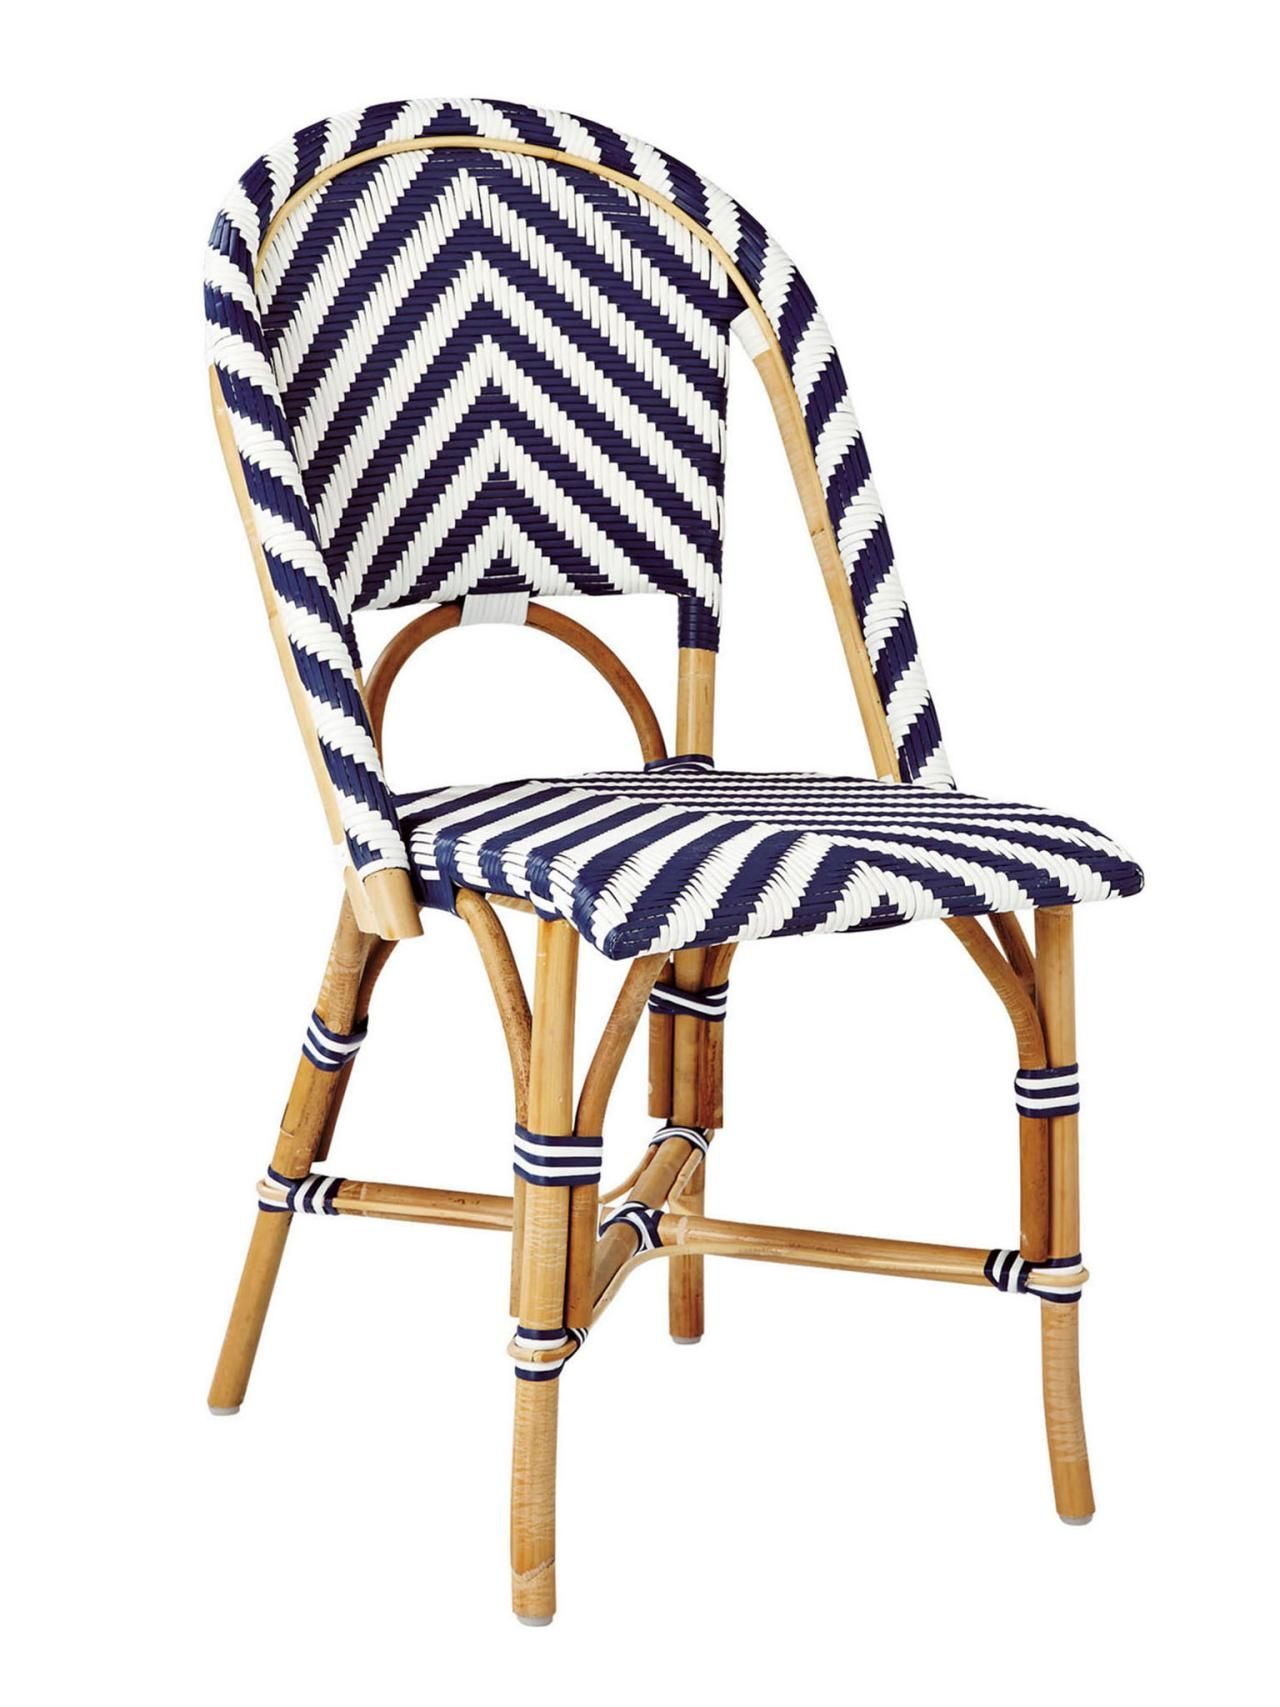 50 Things That Never Go Out of Style Side chairs, Bistro